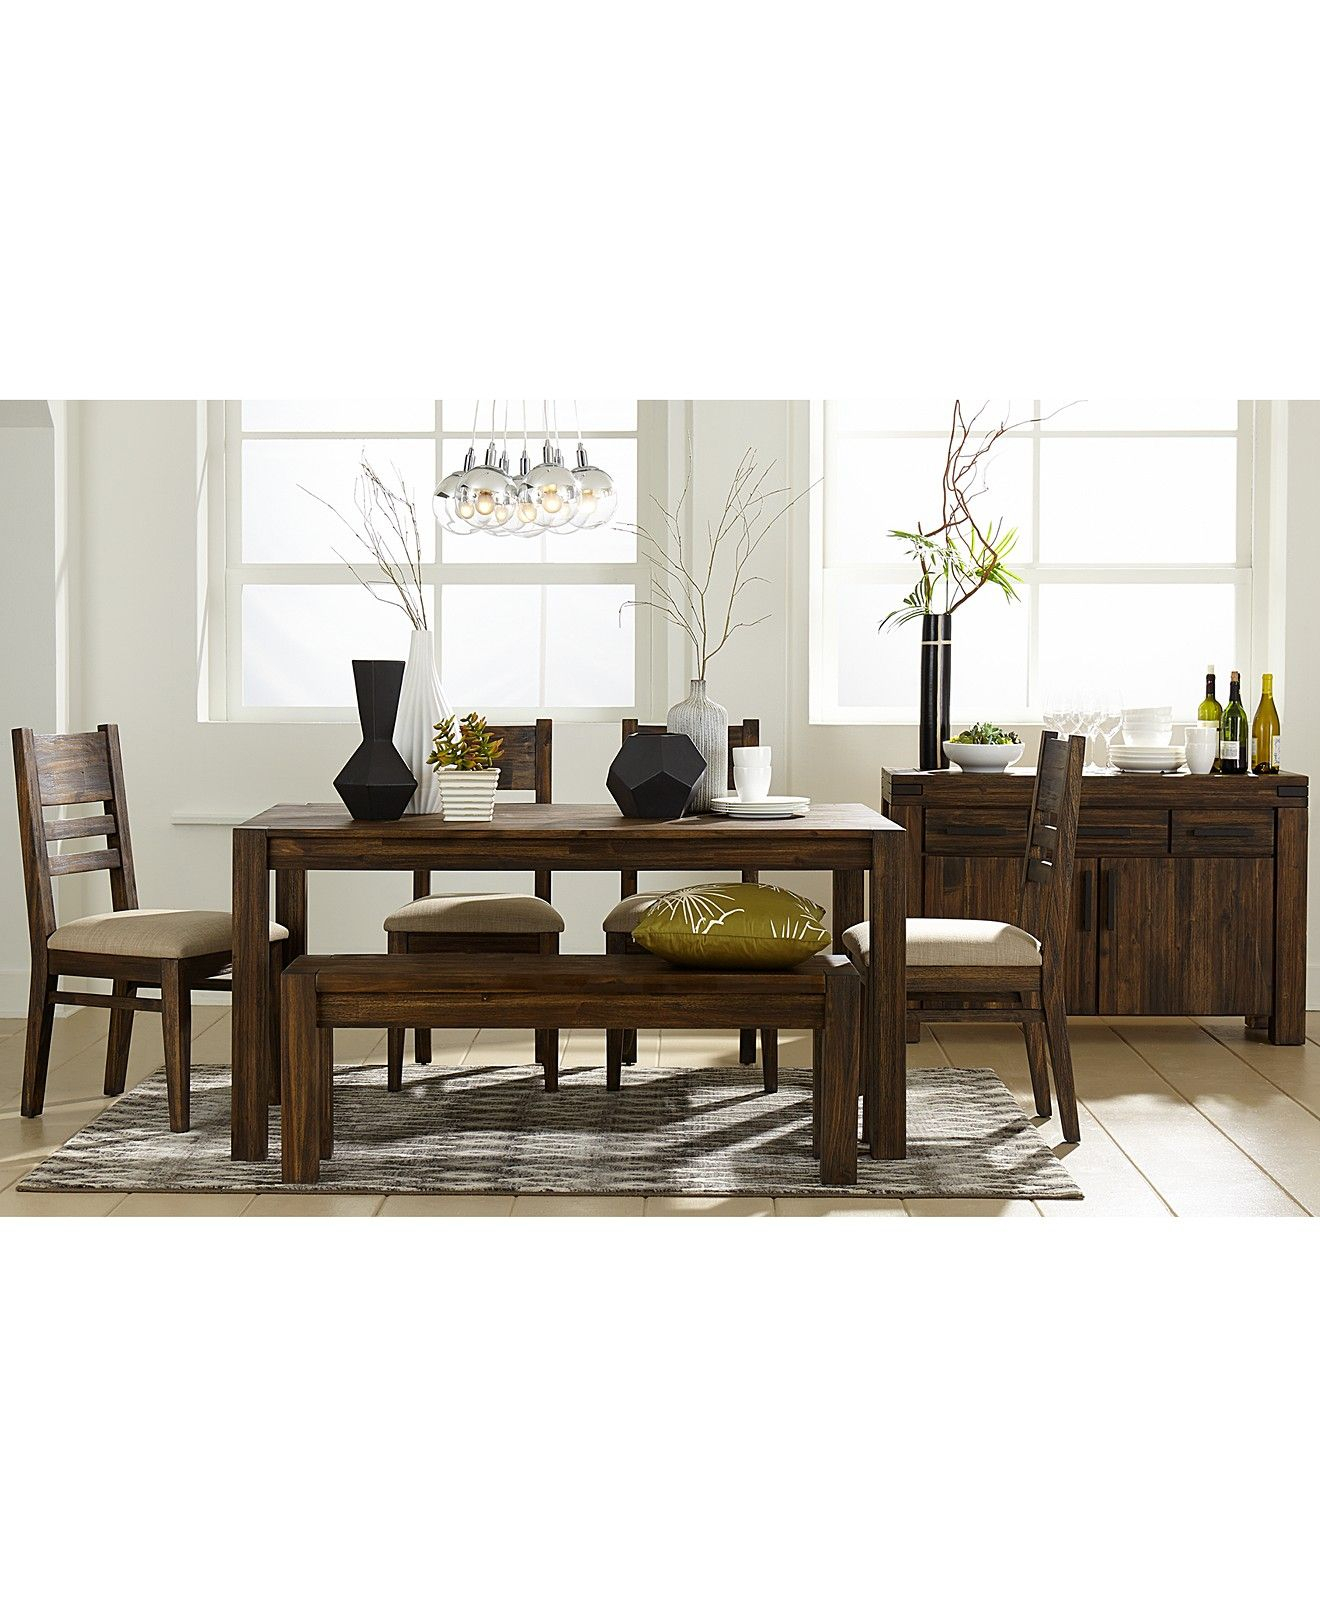 Avondale Dining Room Furniture Collection, Created For Regarding 2018 Avondale Dining Tables (View 17 of 25)